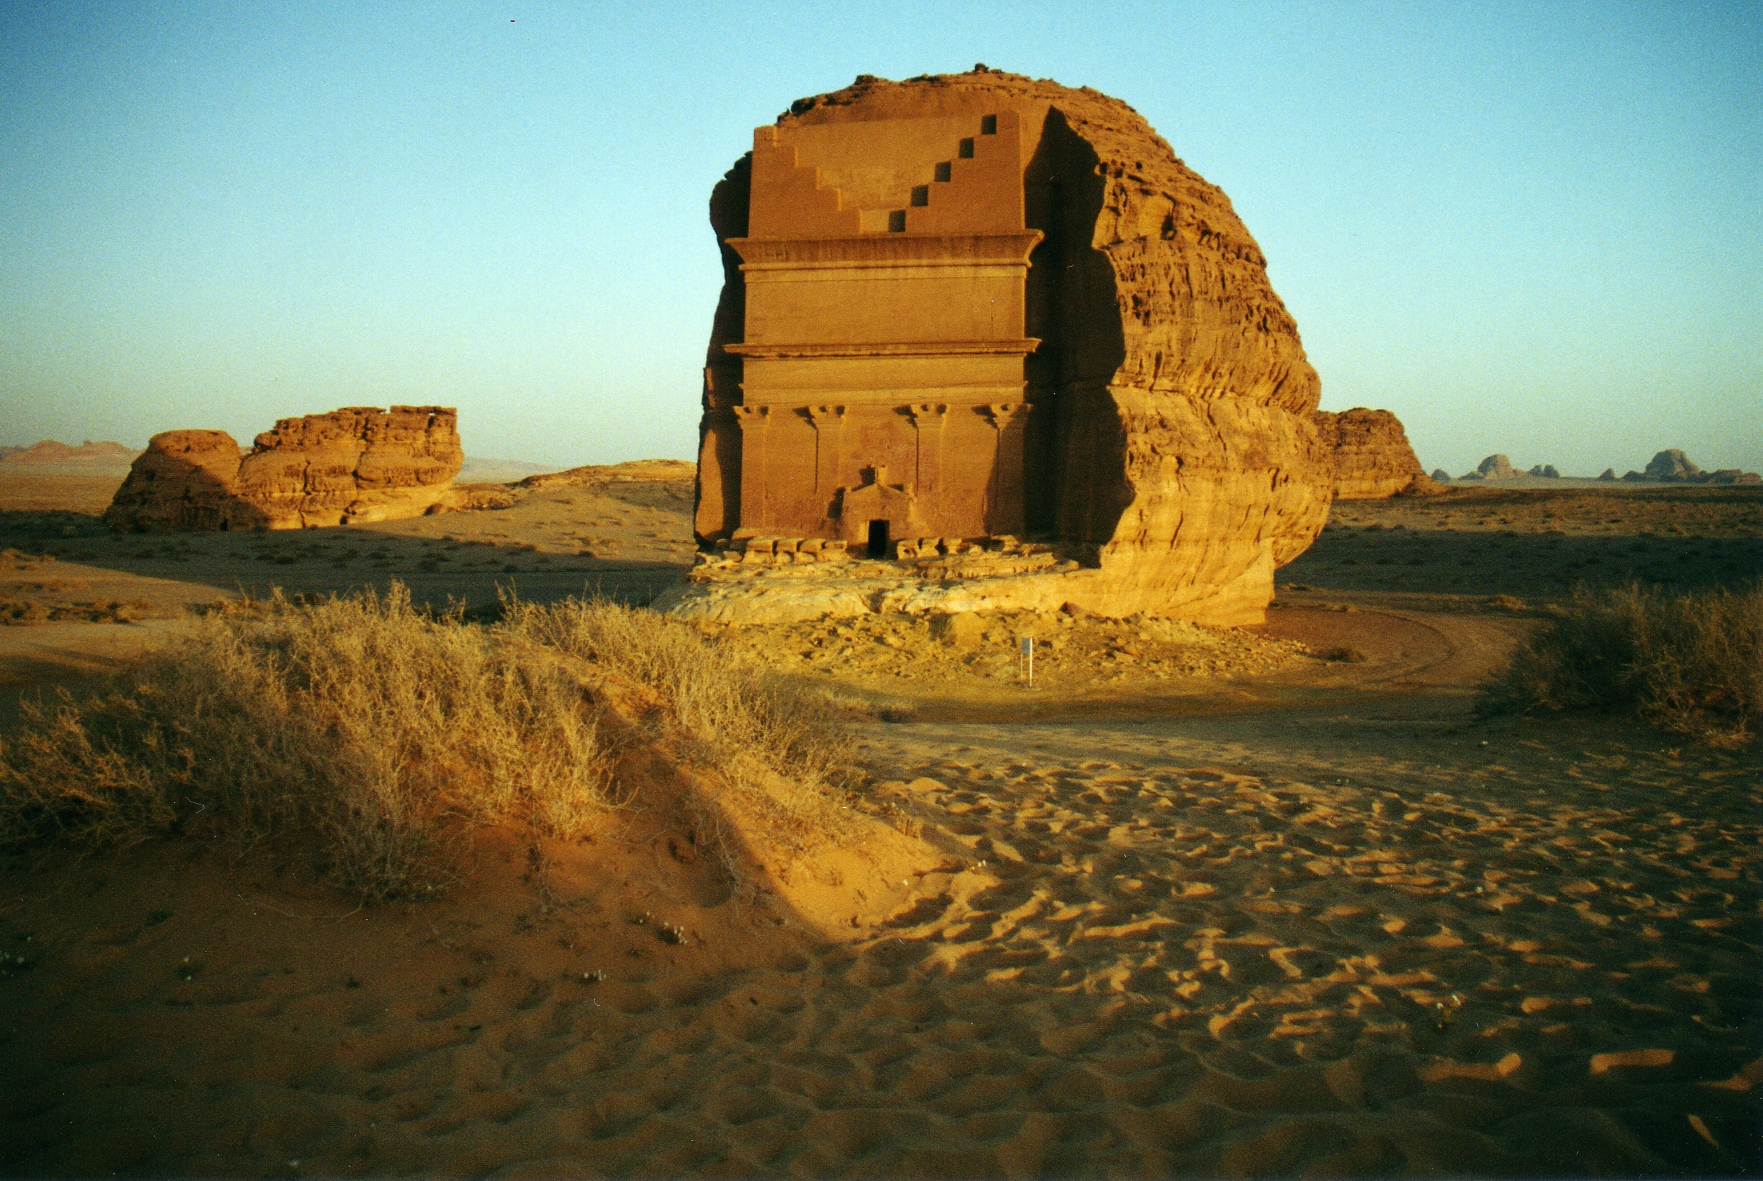 2002 Mada'in Saleh, Saudi Arabia